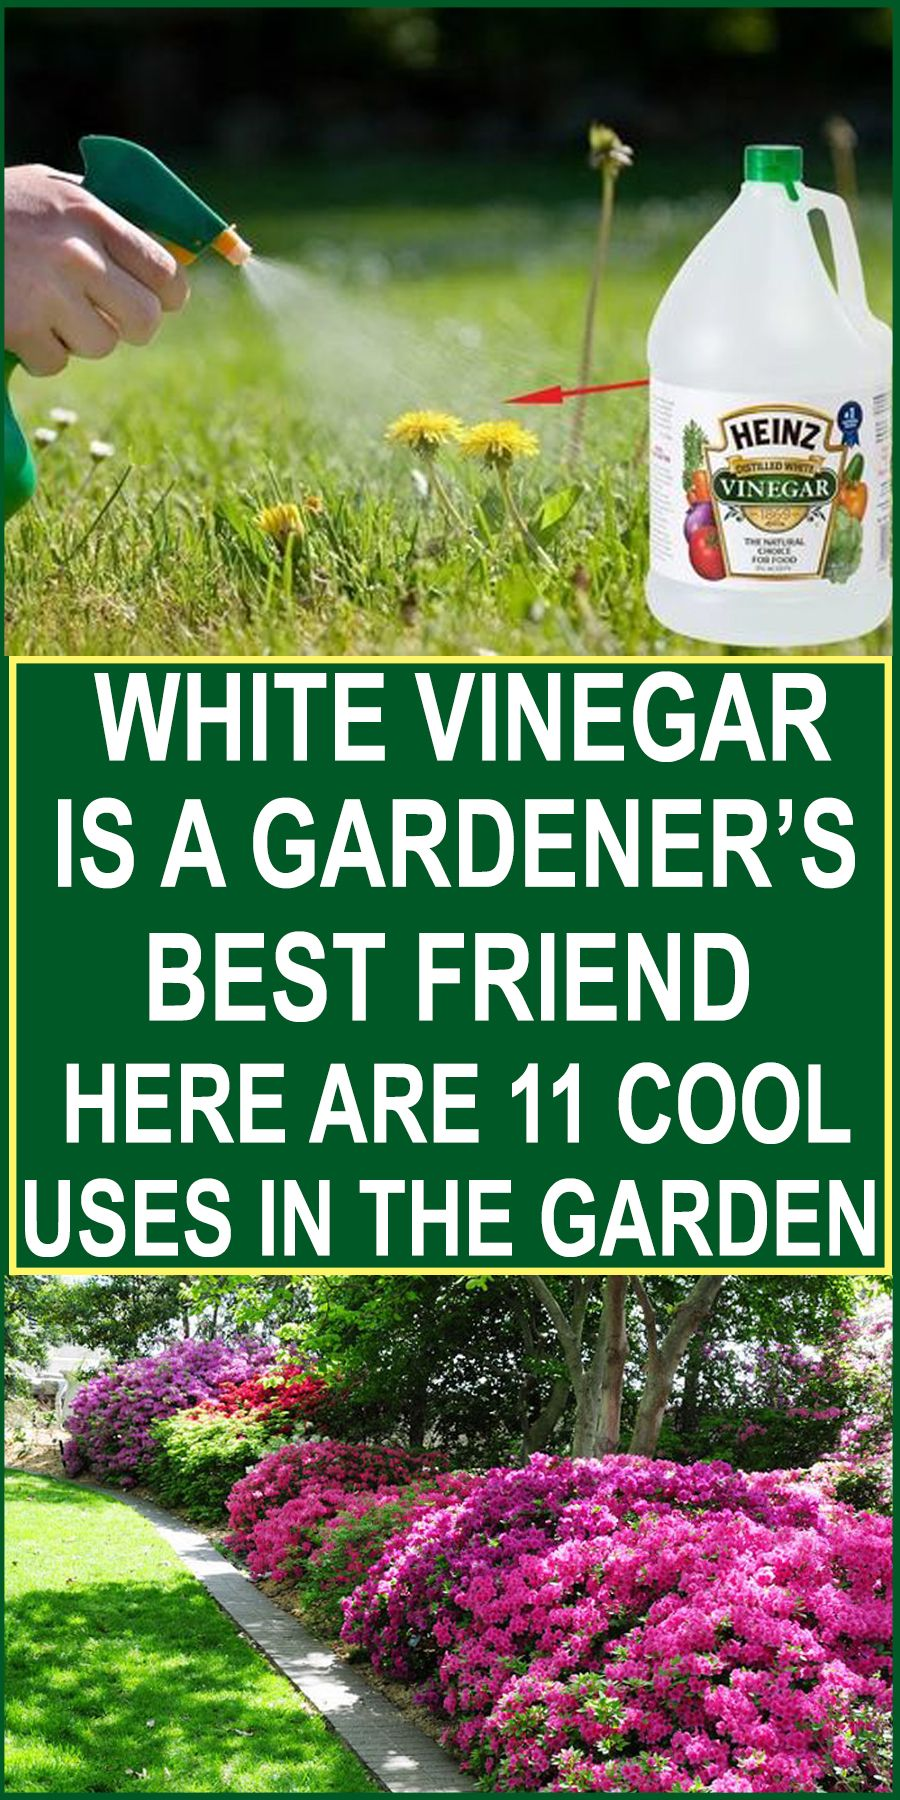 People Use Organic Food To Digest Organic Products For Beauty And Makeup And Apply Organic Methods For Farming Vi Garden Pests Healthy Garden Gardening Tips